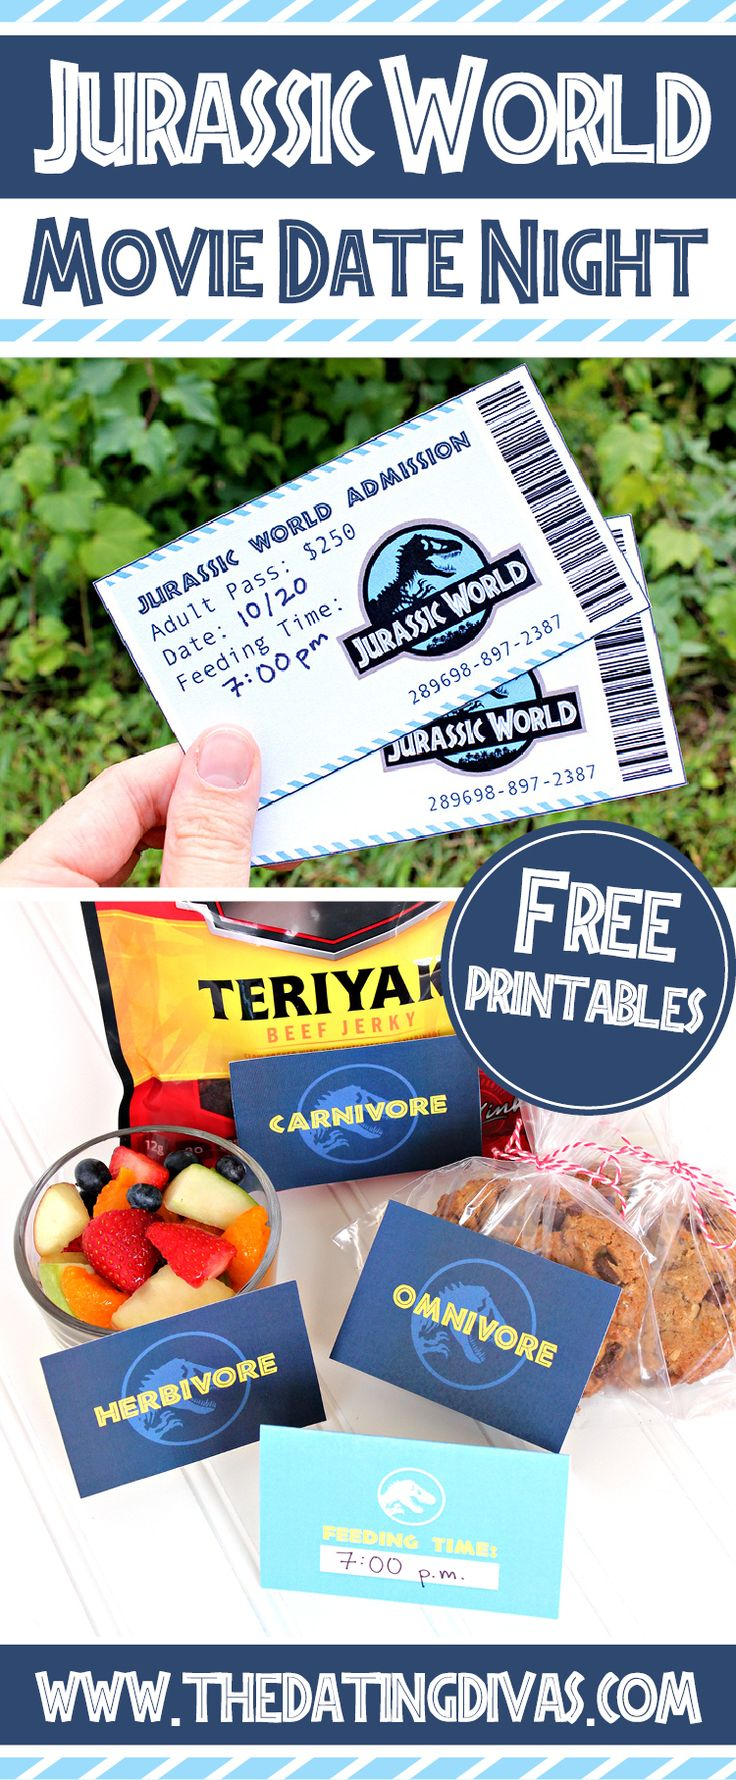 Jurassic World printables for a movie date night! Awesome way to make a movie date night more fun! www.TheDatingDivas.com